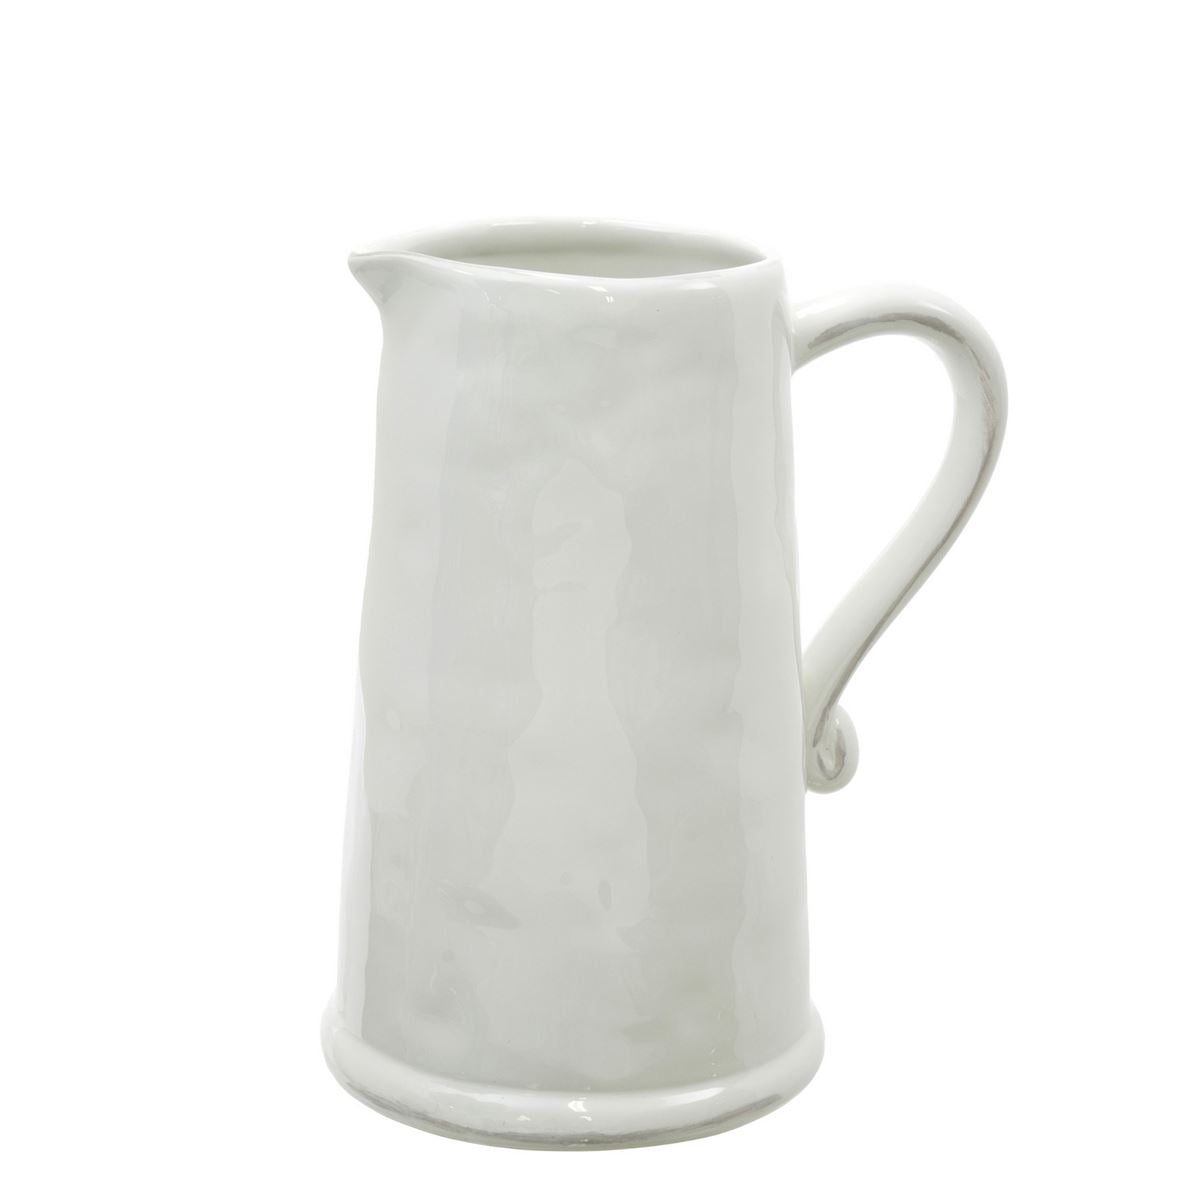 Sarah White Pitcher - Pacific Design Co.